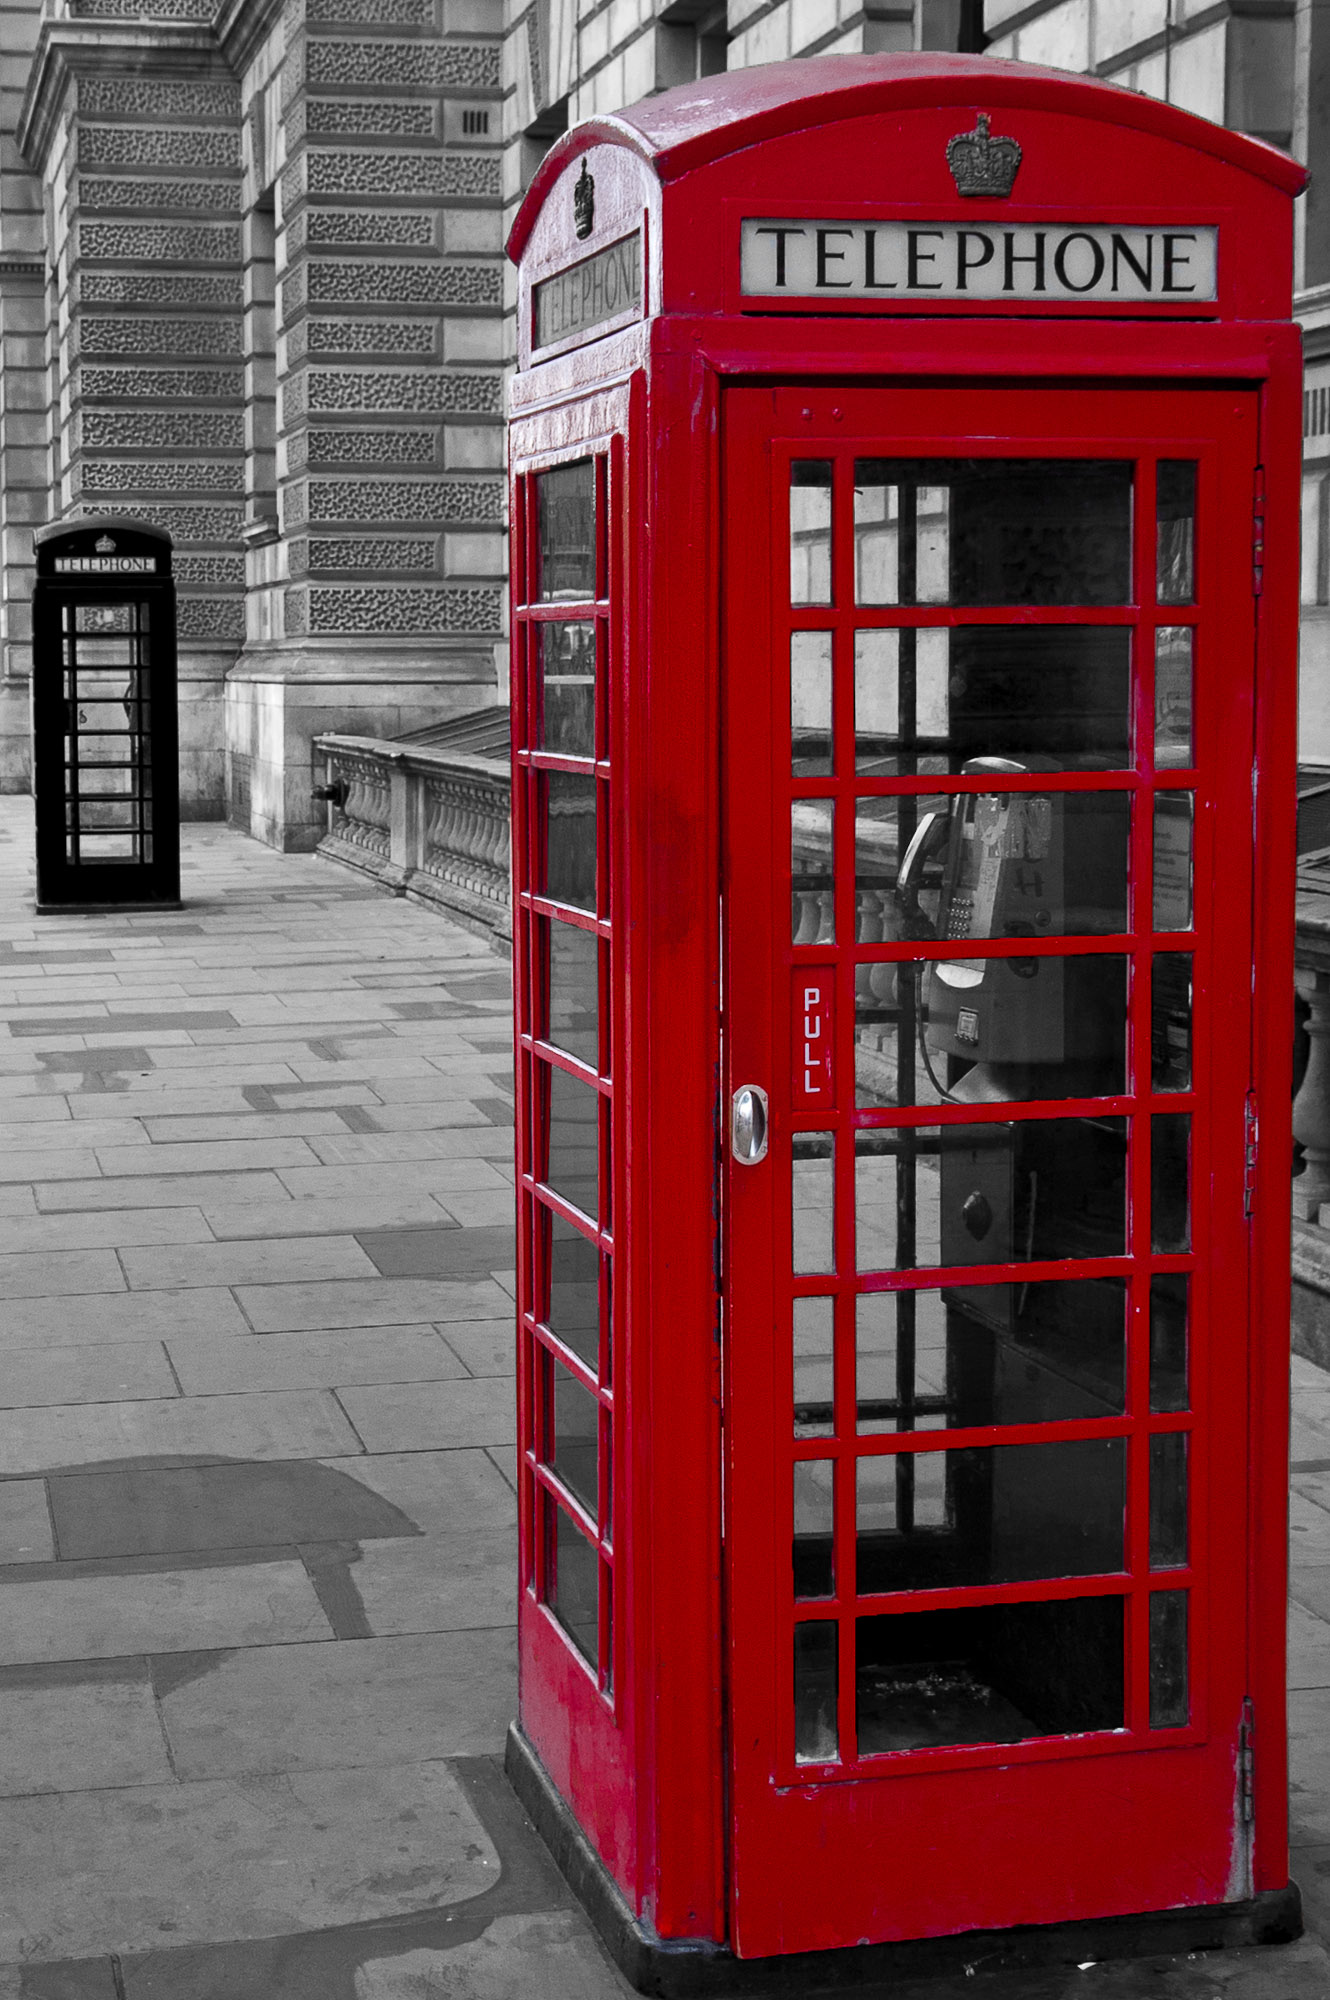 Red: Telephone